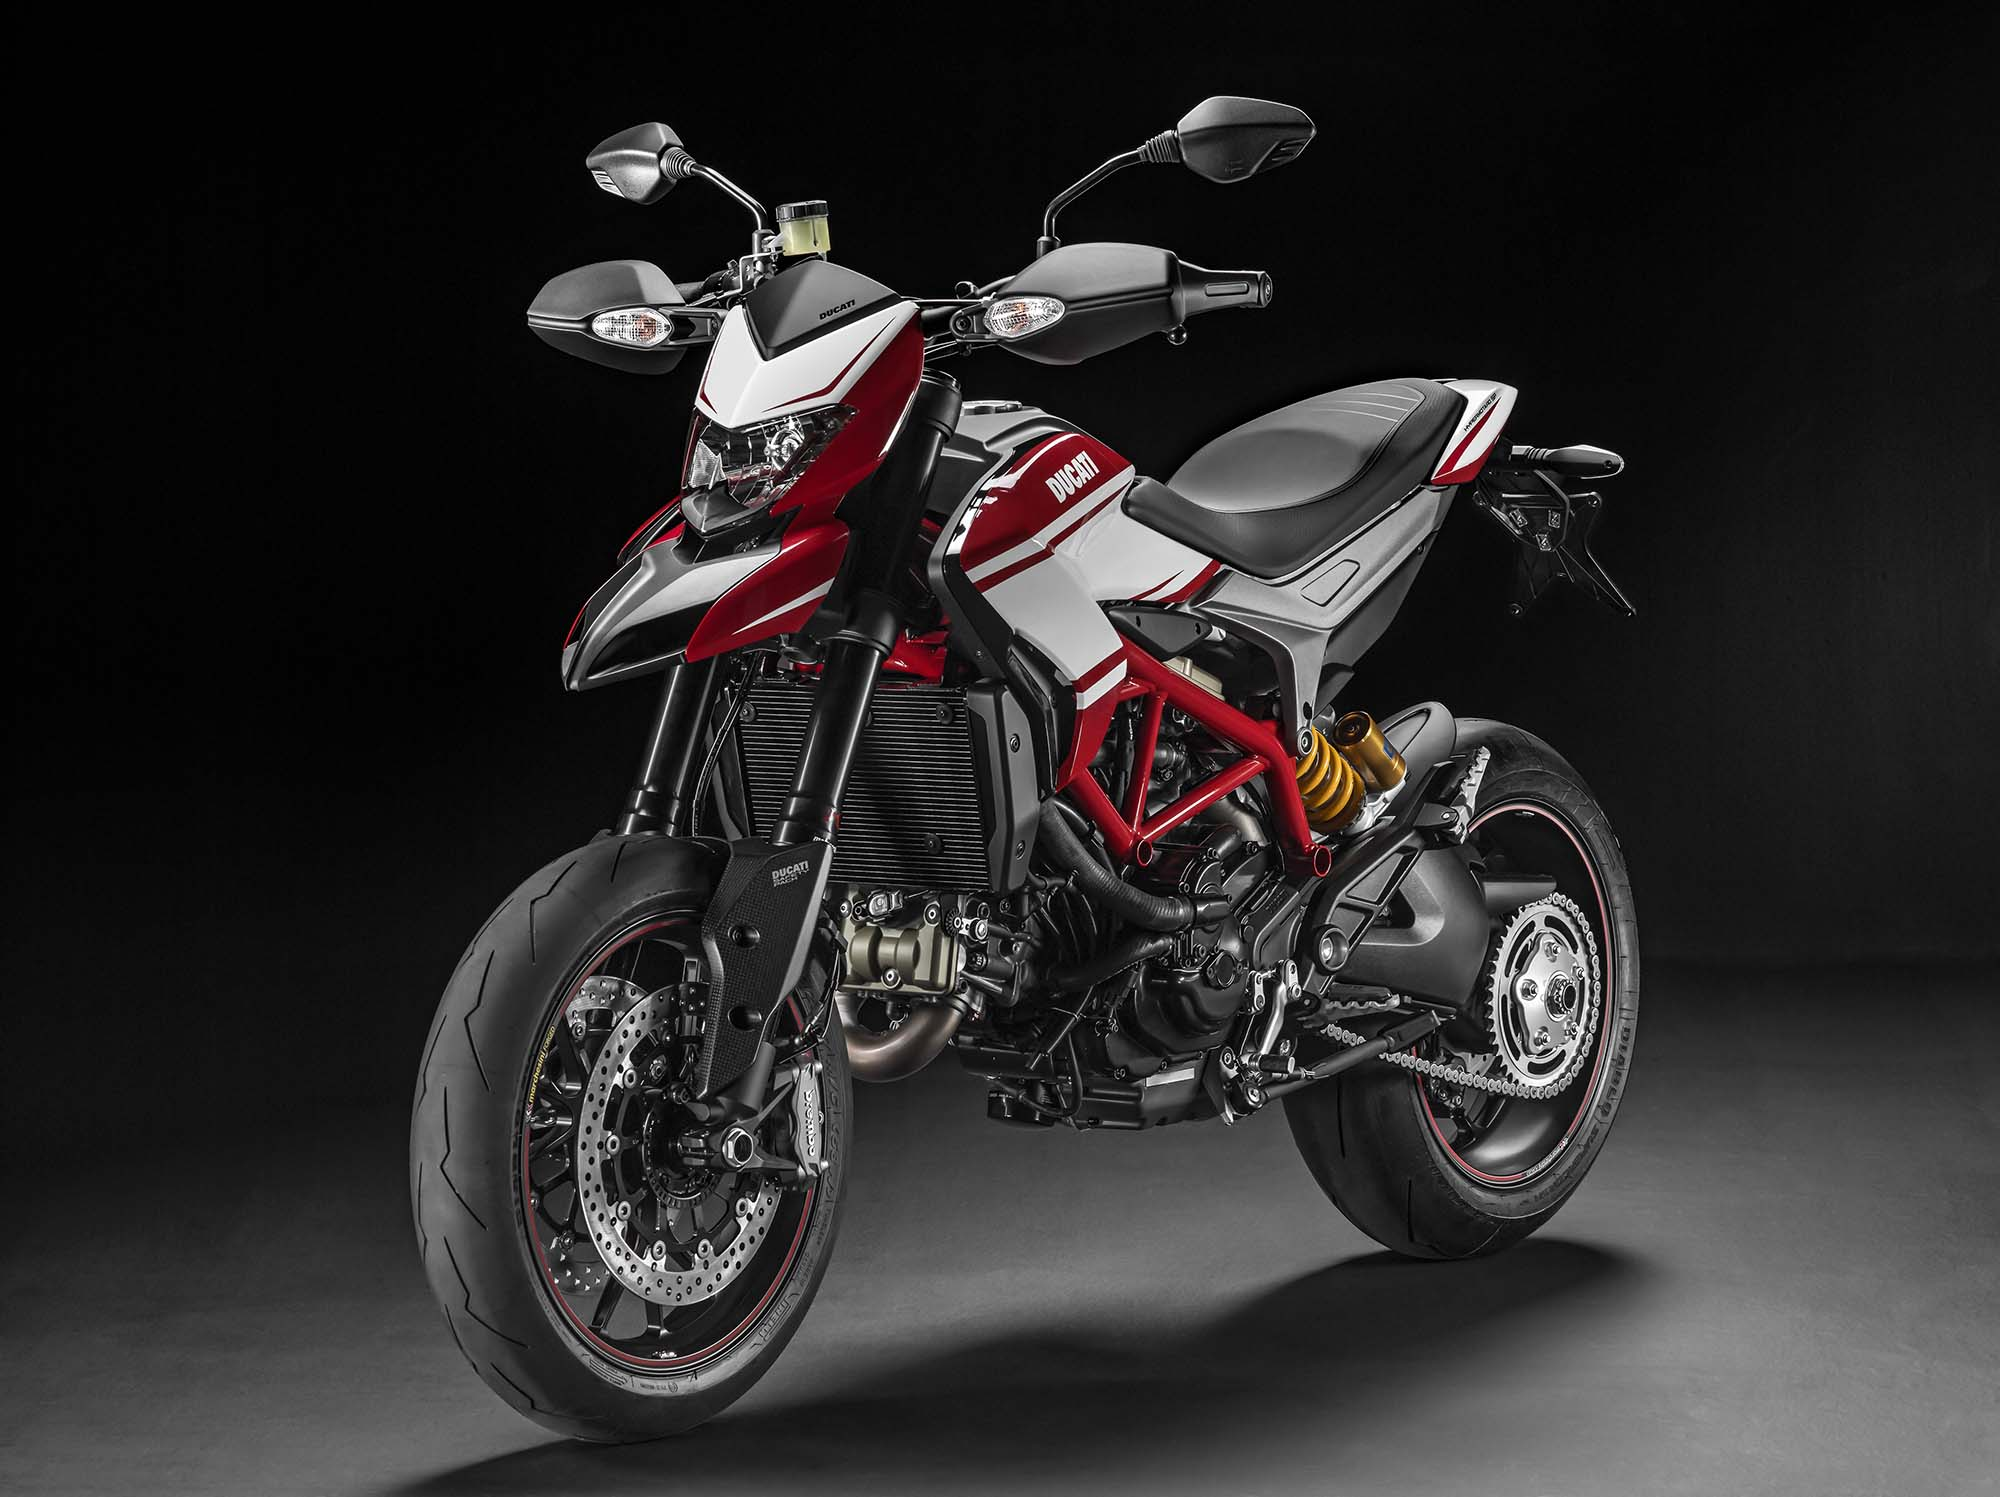 ducati hypermotard sp gets new paint for 2015 asphalt rubber. Black Bedroom Furniture Sets. Home Design Ideas